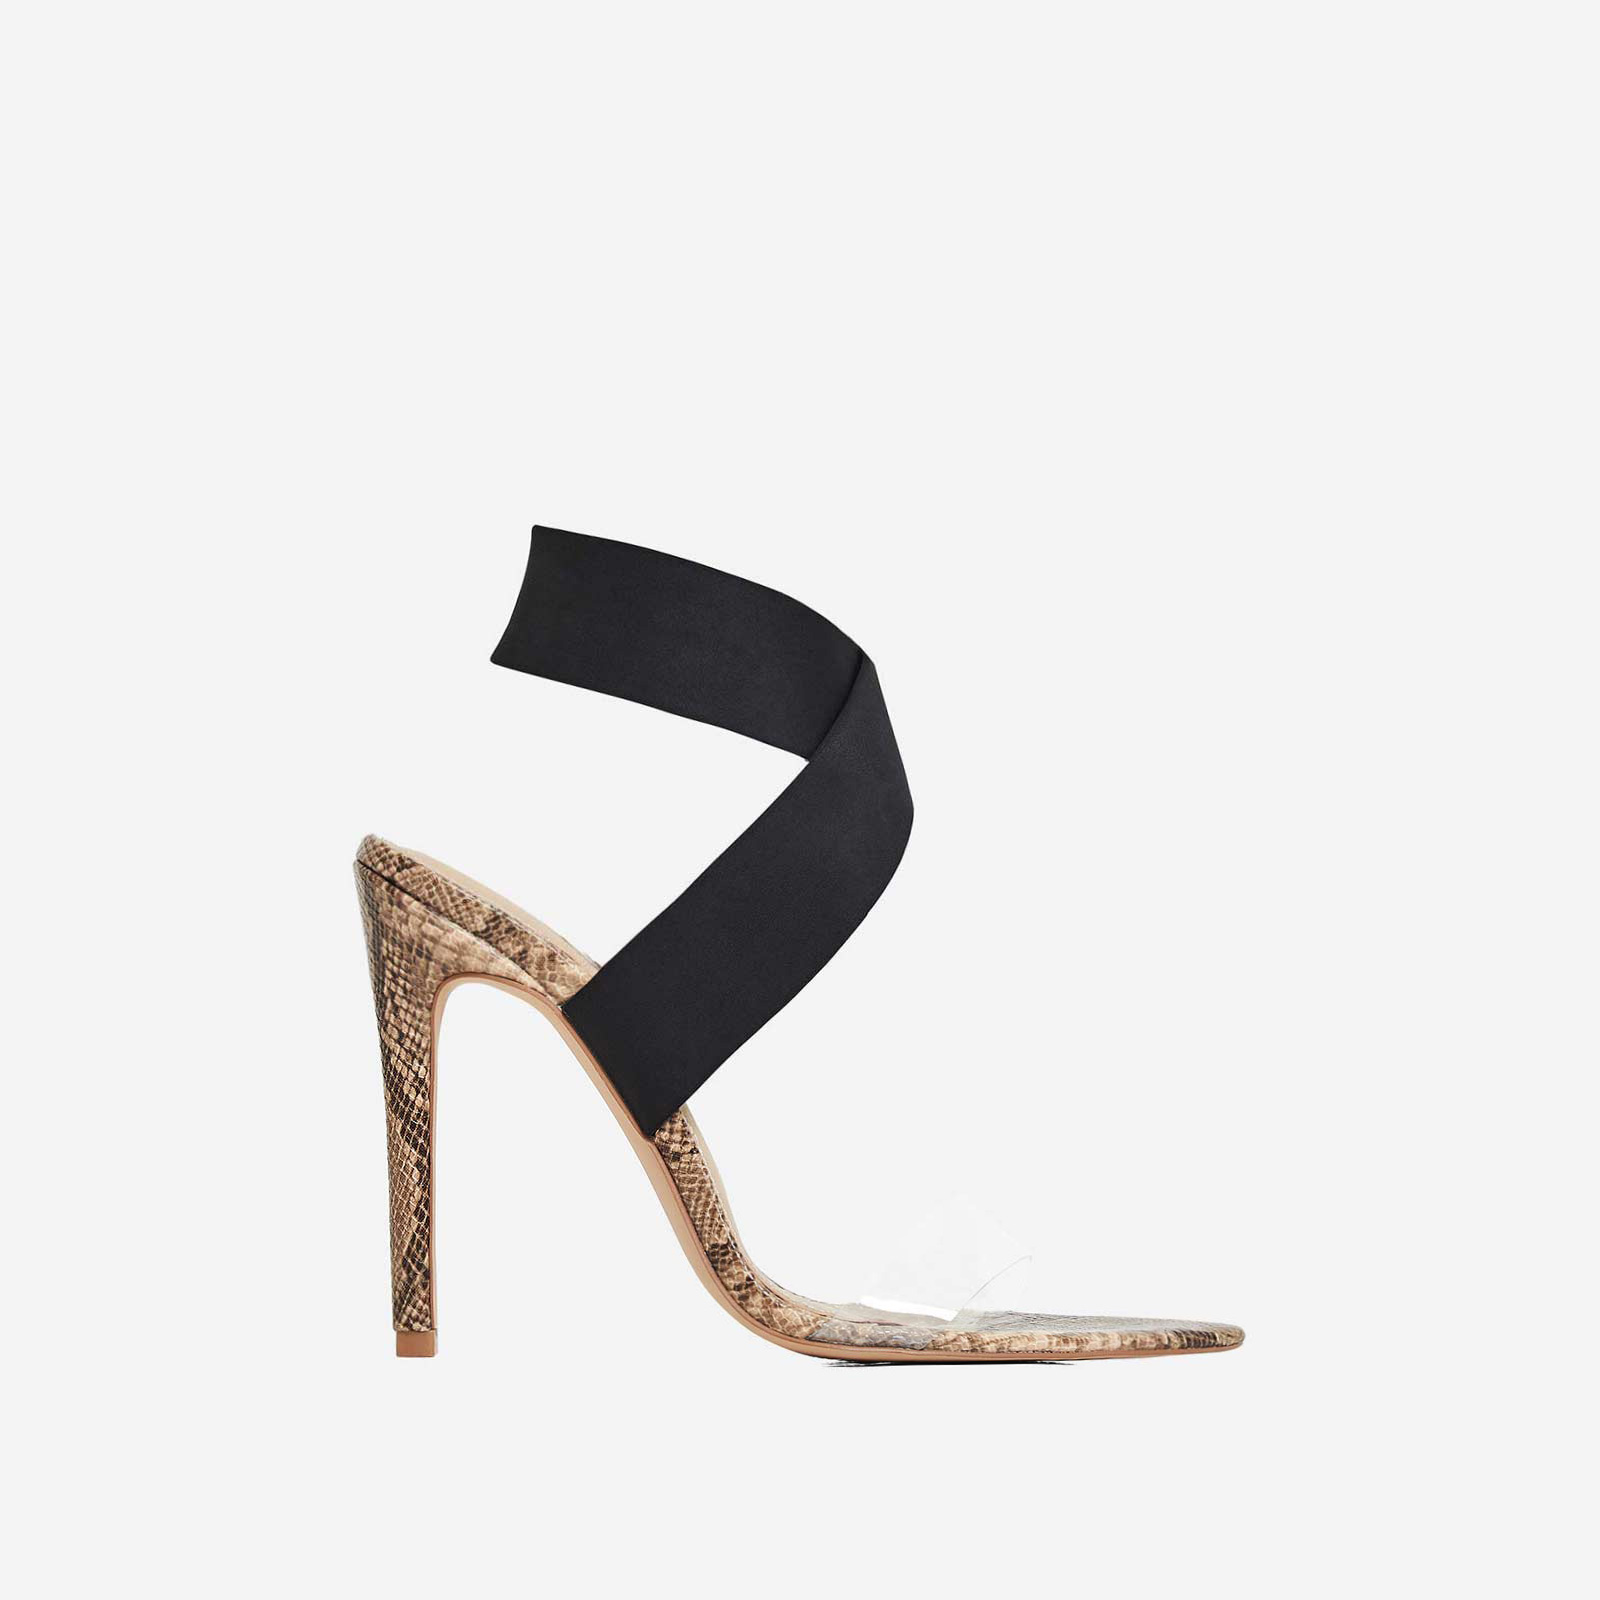 Joma Perspex Detail Heel In Nude Snake Print Faux Leather